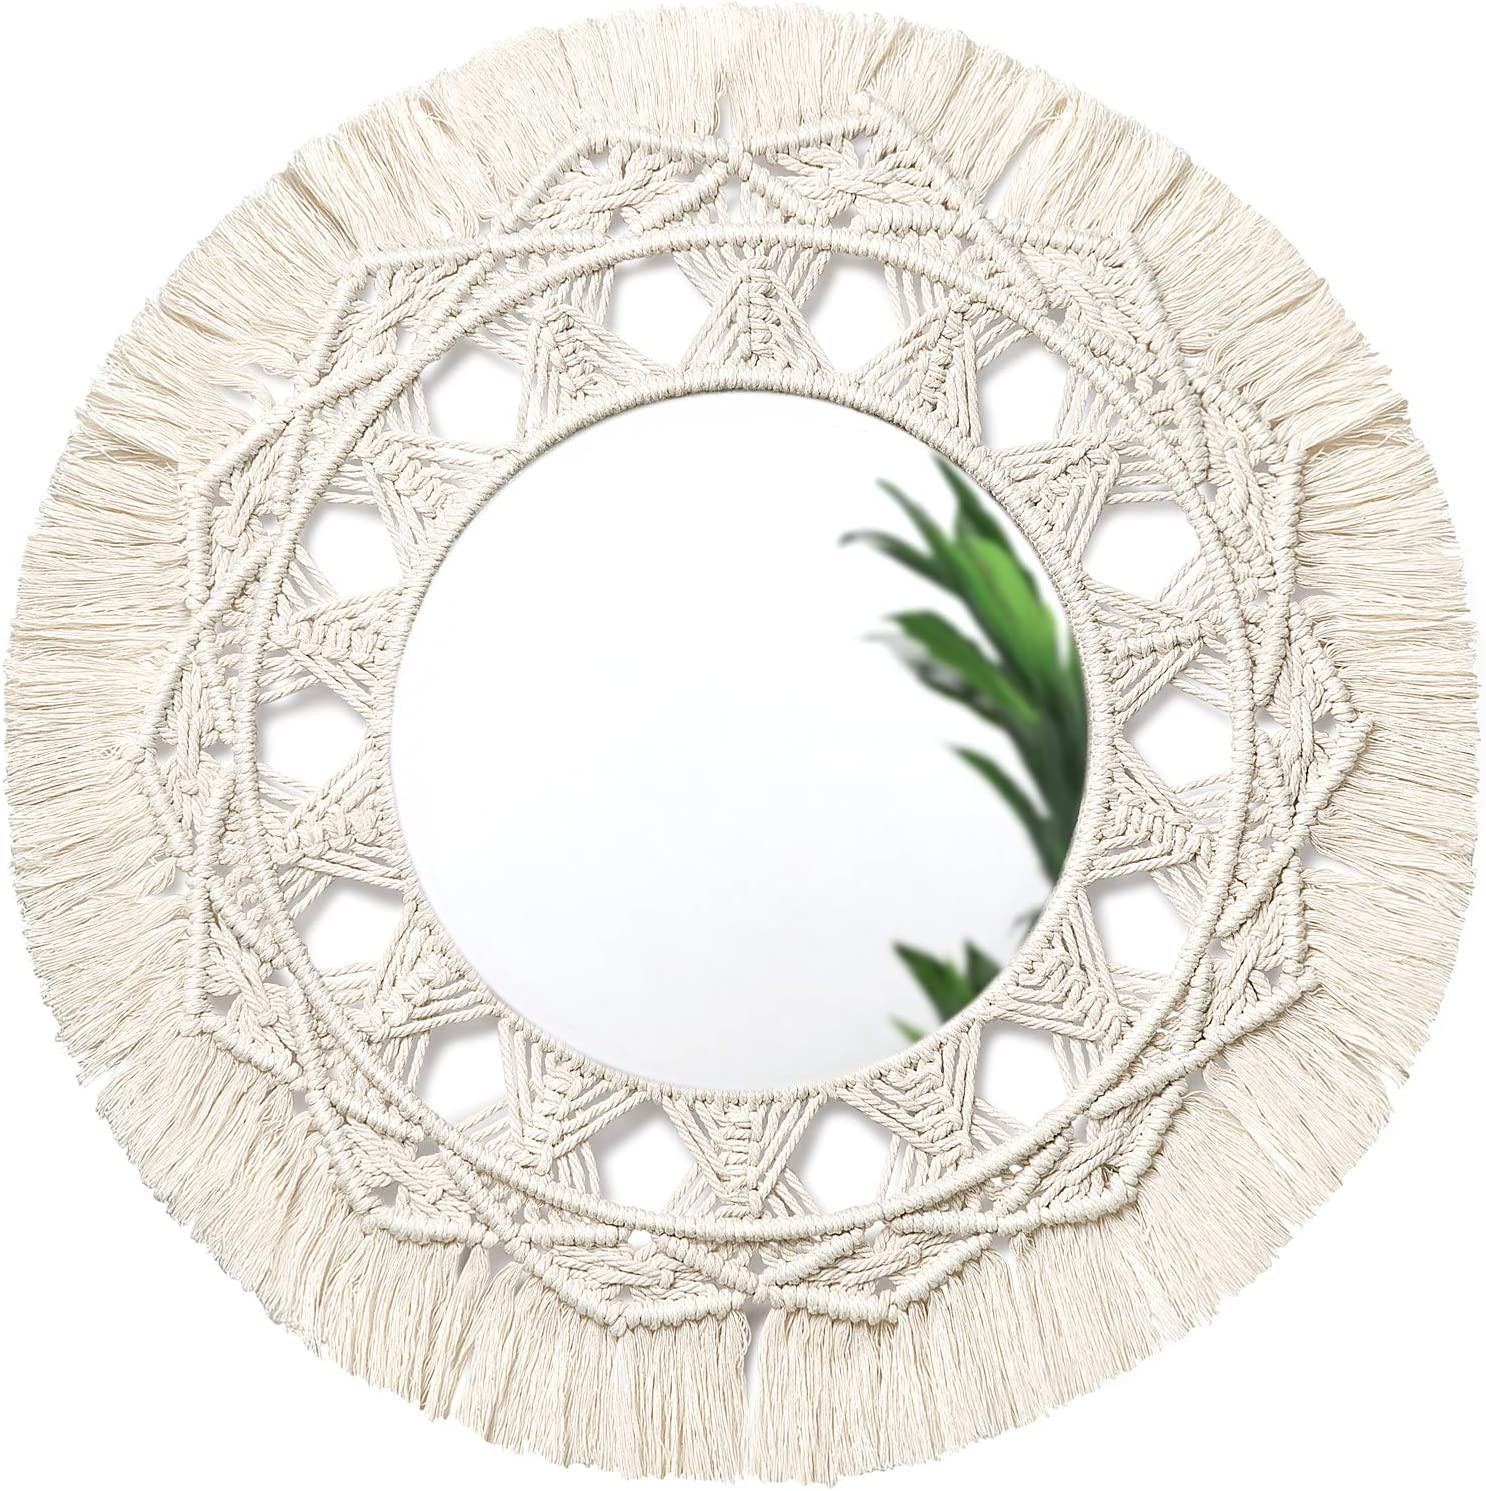 """Dahey Macrame Hanging Wall Mirror with Boho Fringe Round Decorative Mirror for Apartment Home Bedroom Living Room Decor, 18.5"""" W × 18.5"""" L"""